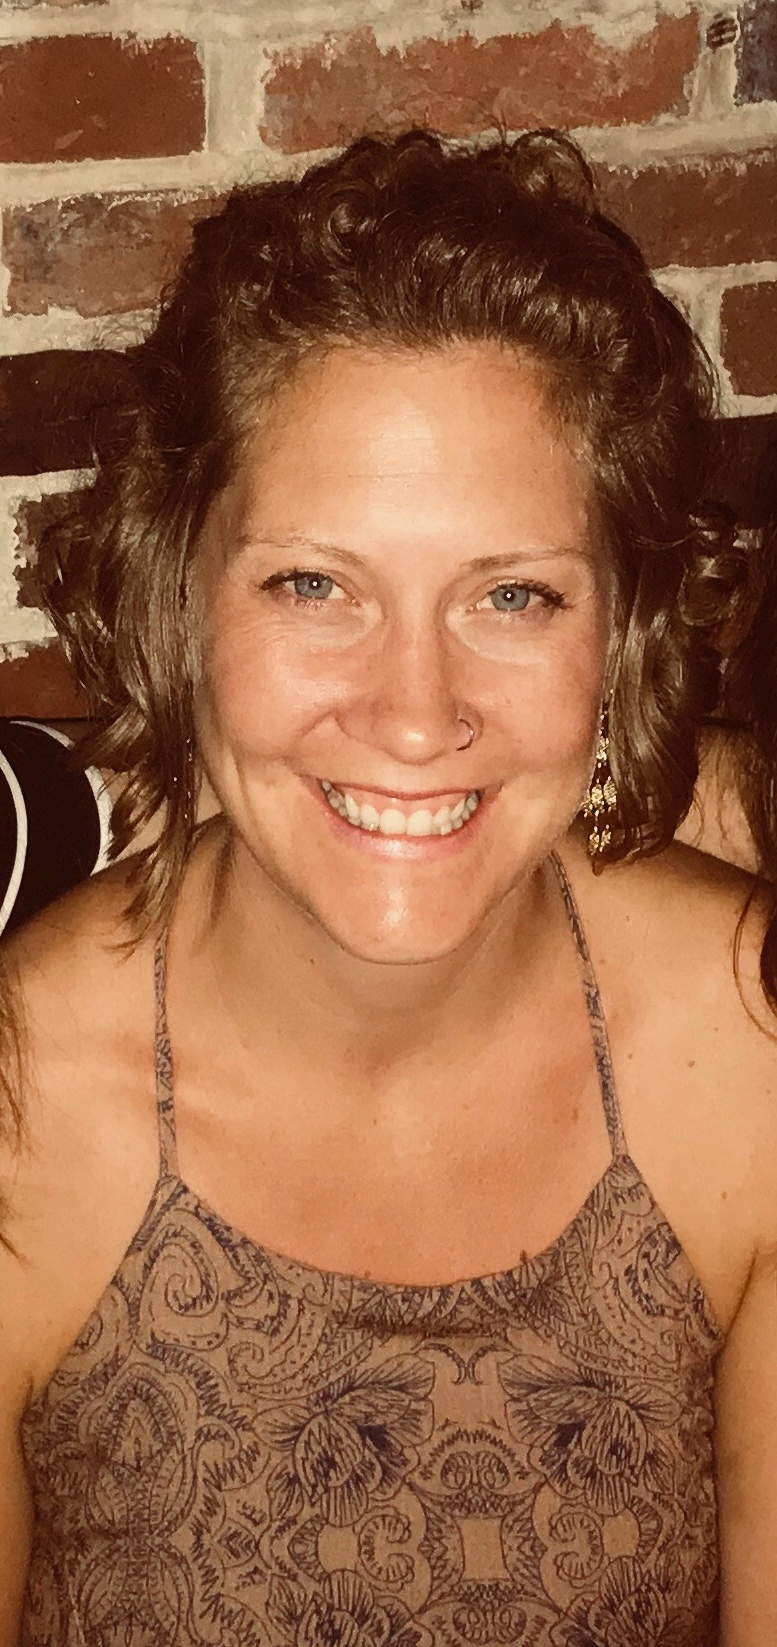 Donna Tolley, LMT, Owner of Deep Roots Therapeutic Massage